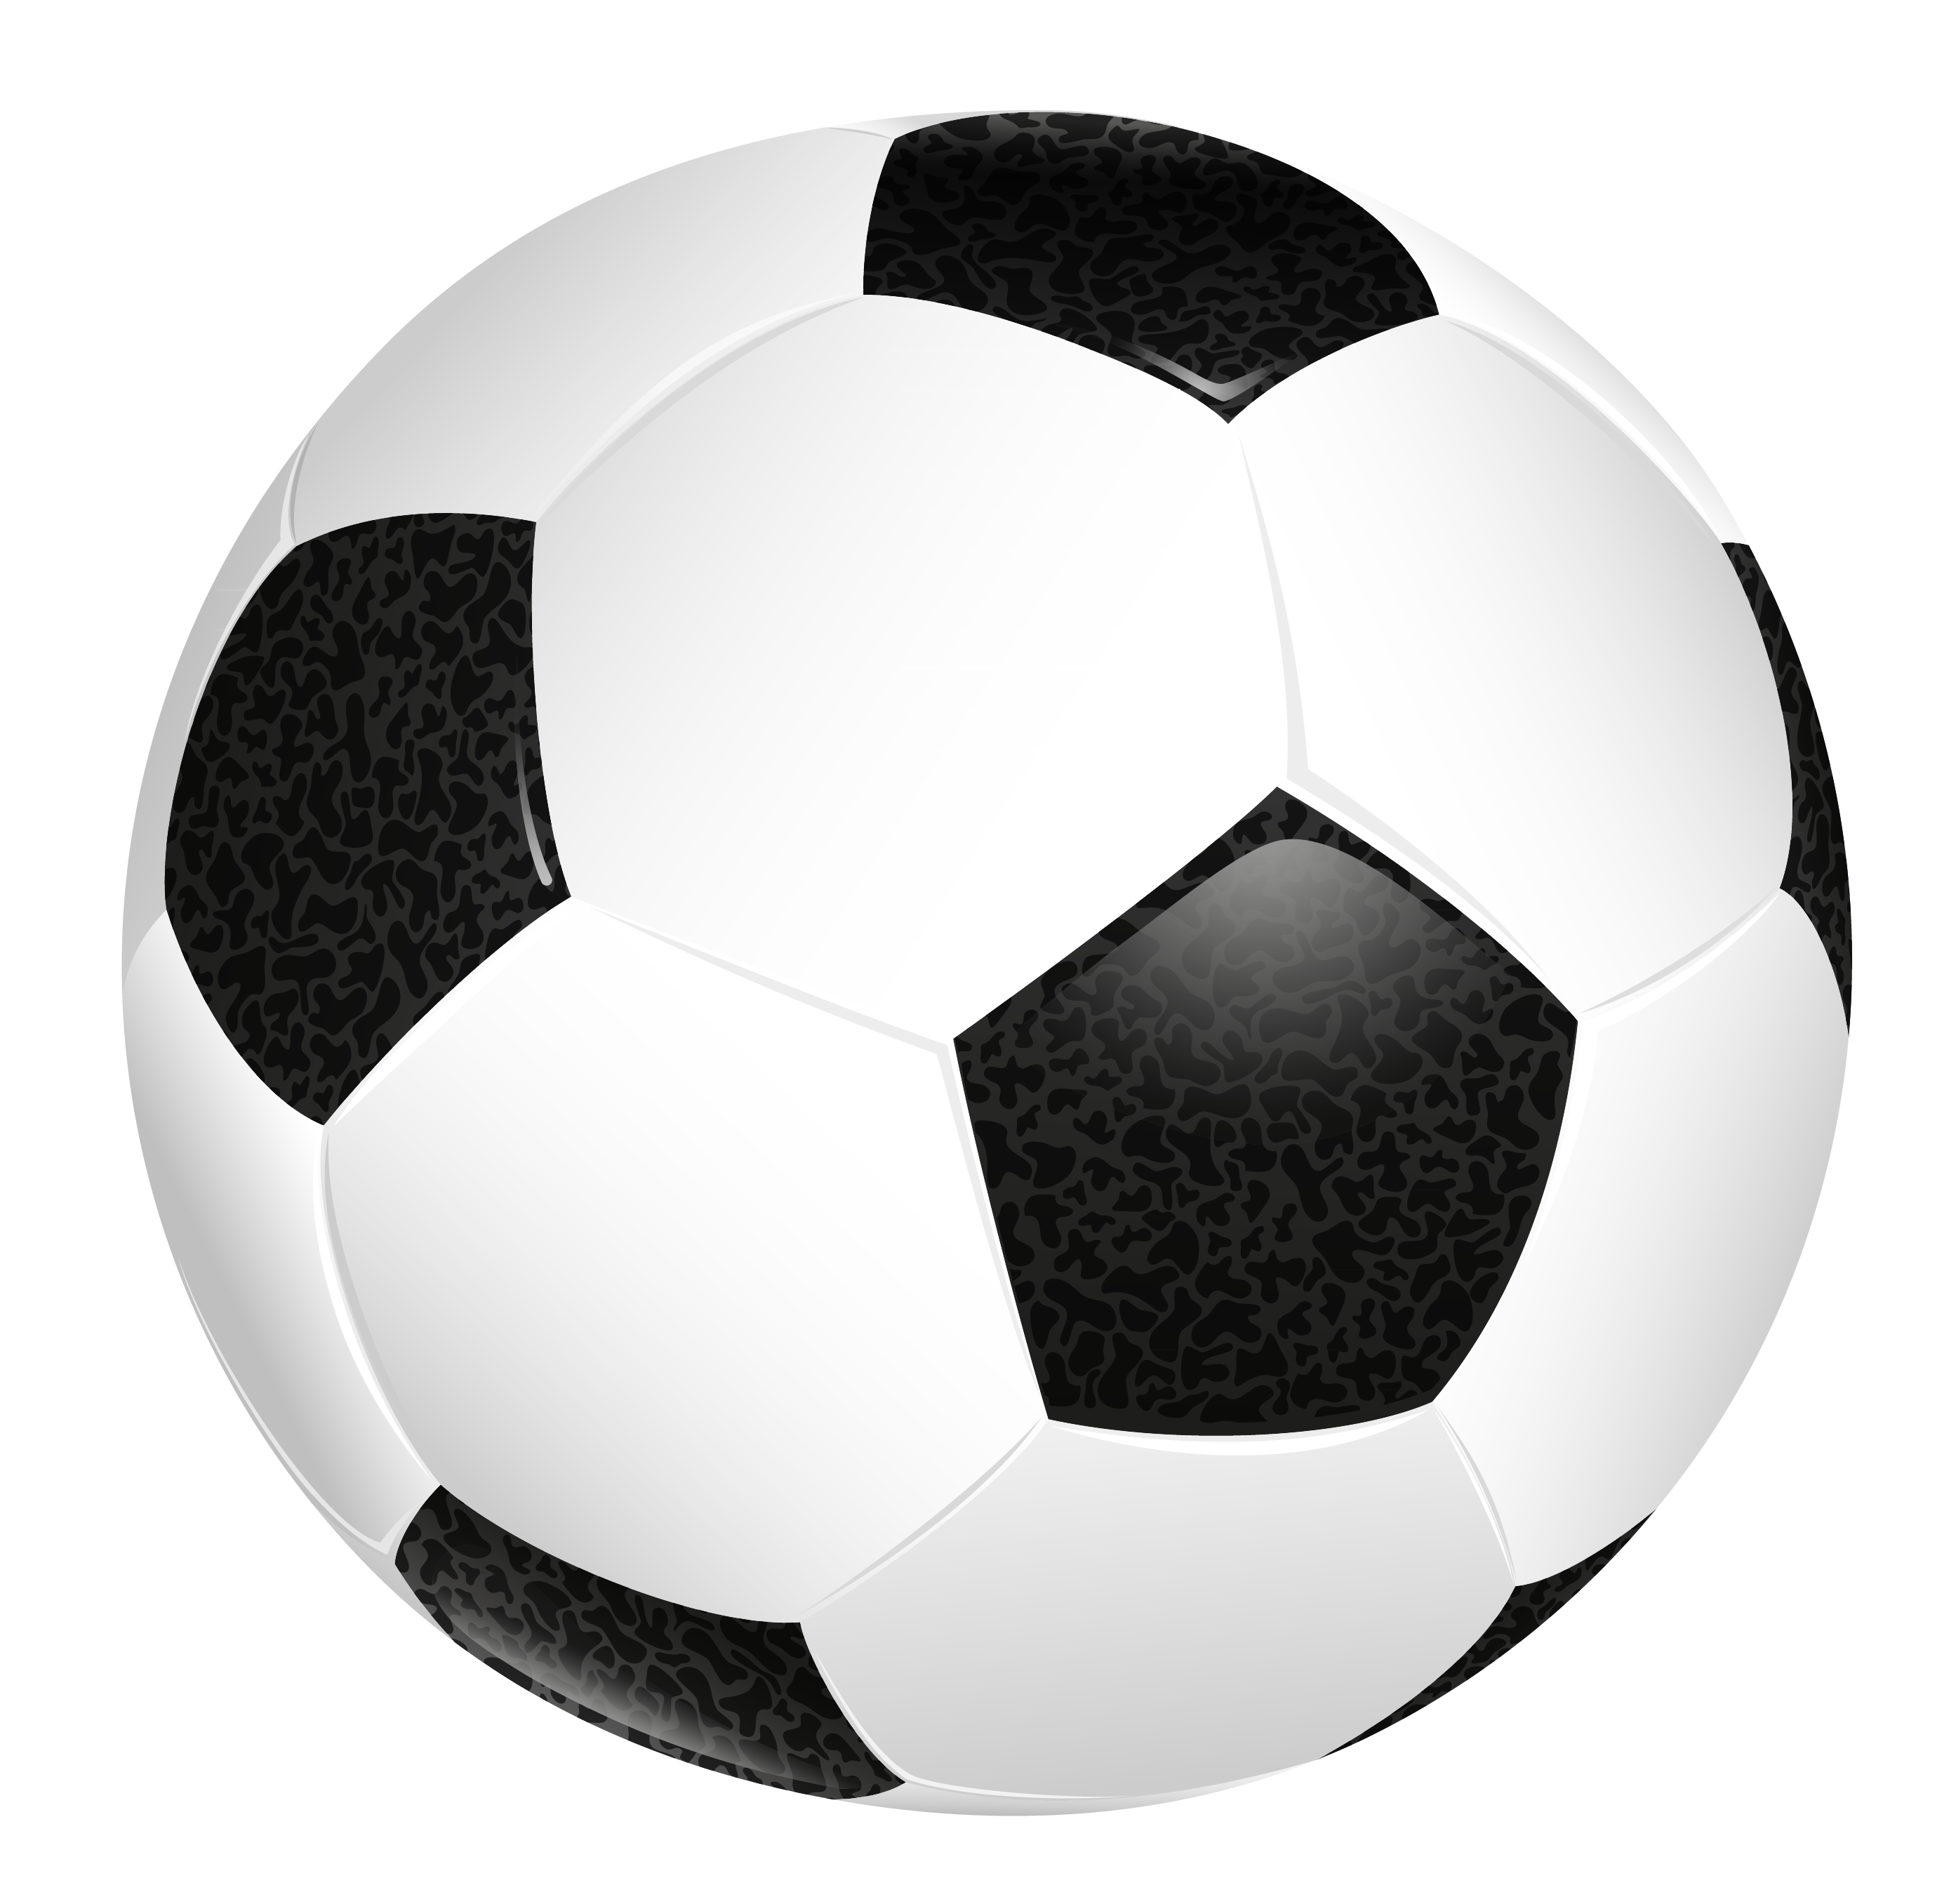 Soccer Ball Transparent PNG Pictures.